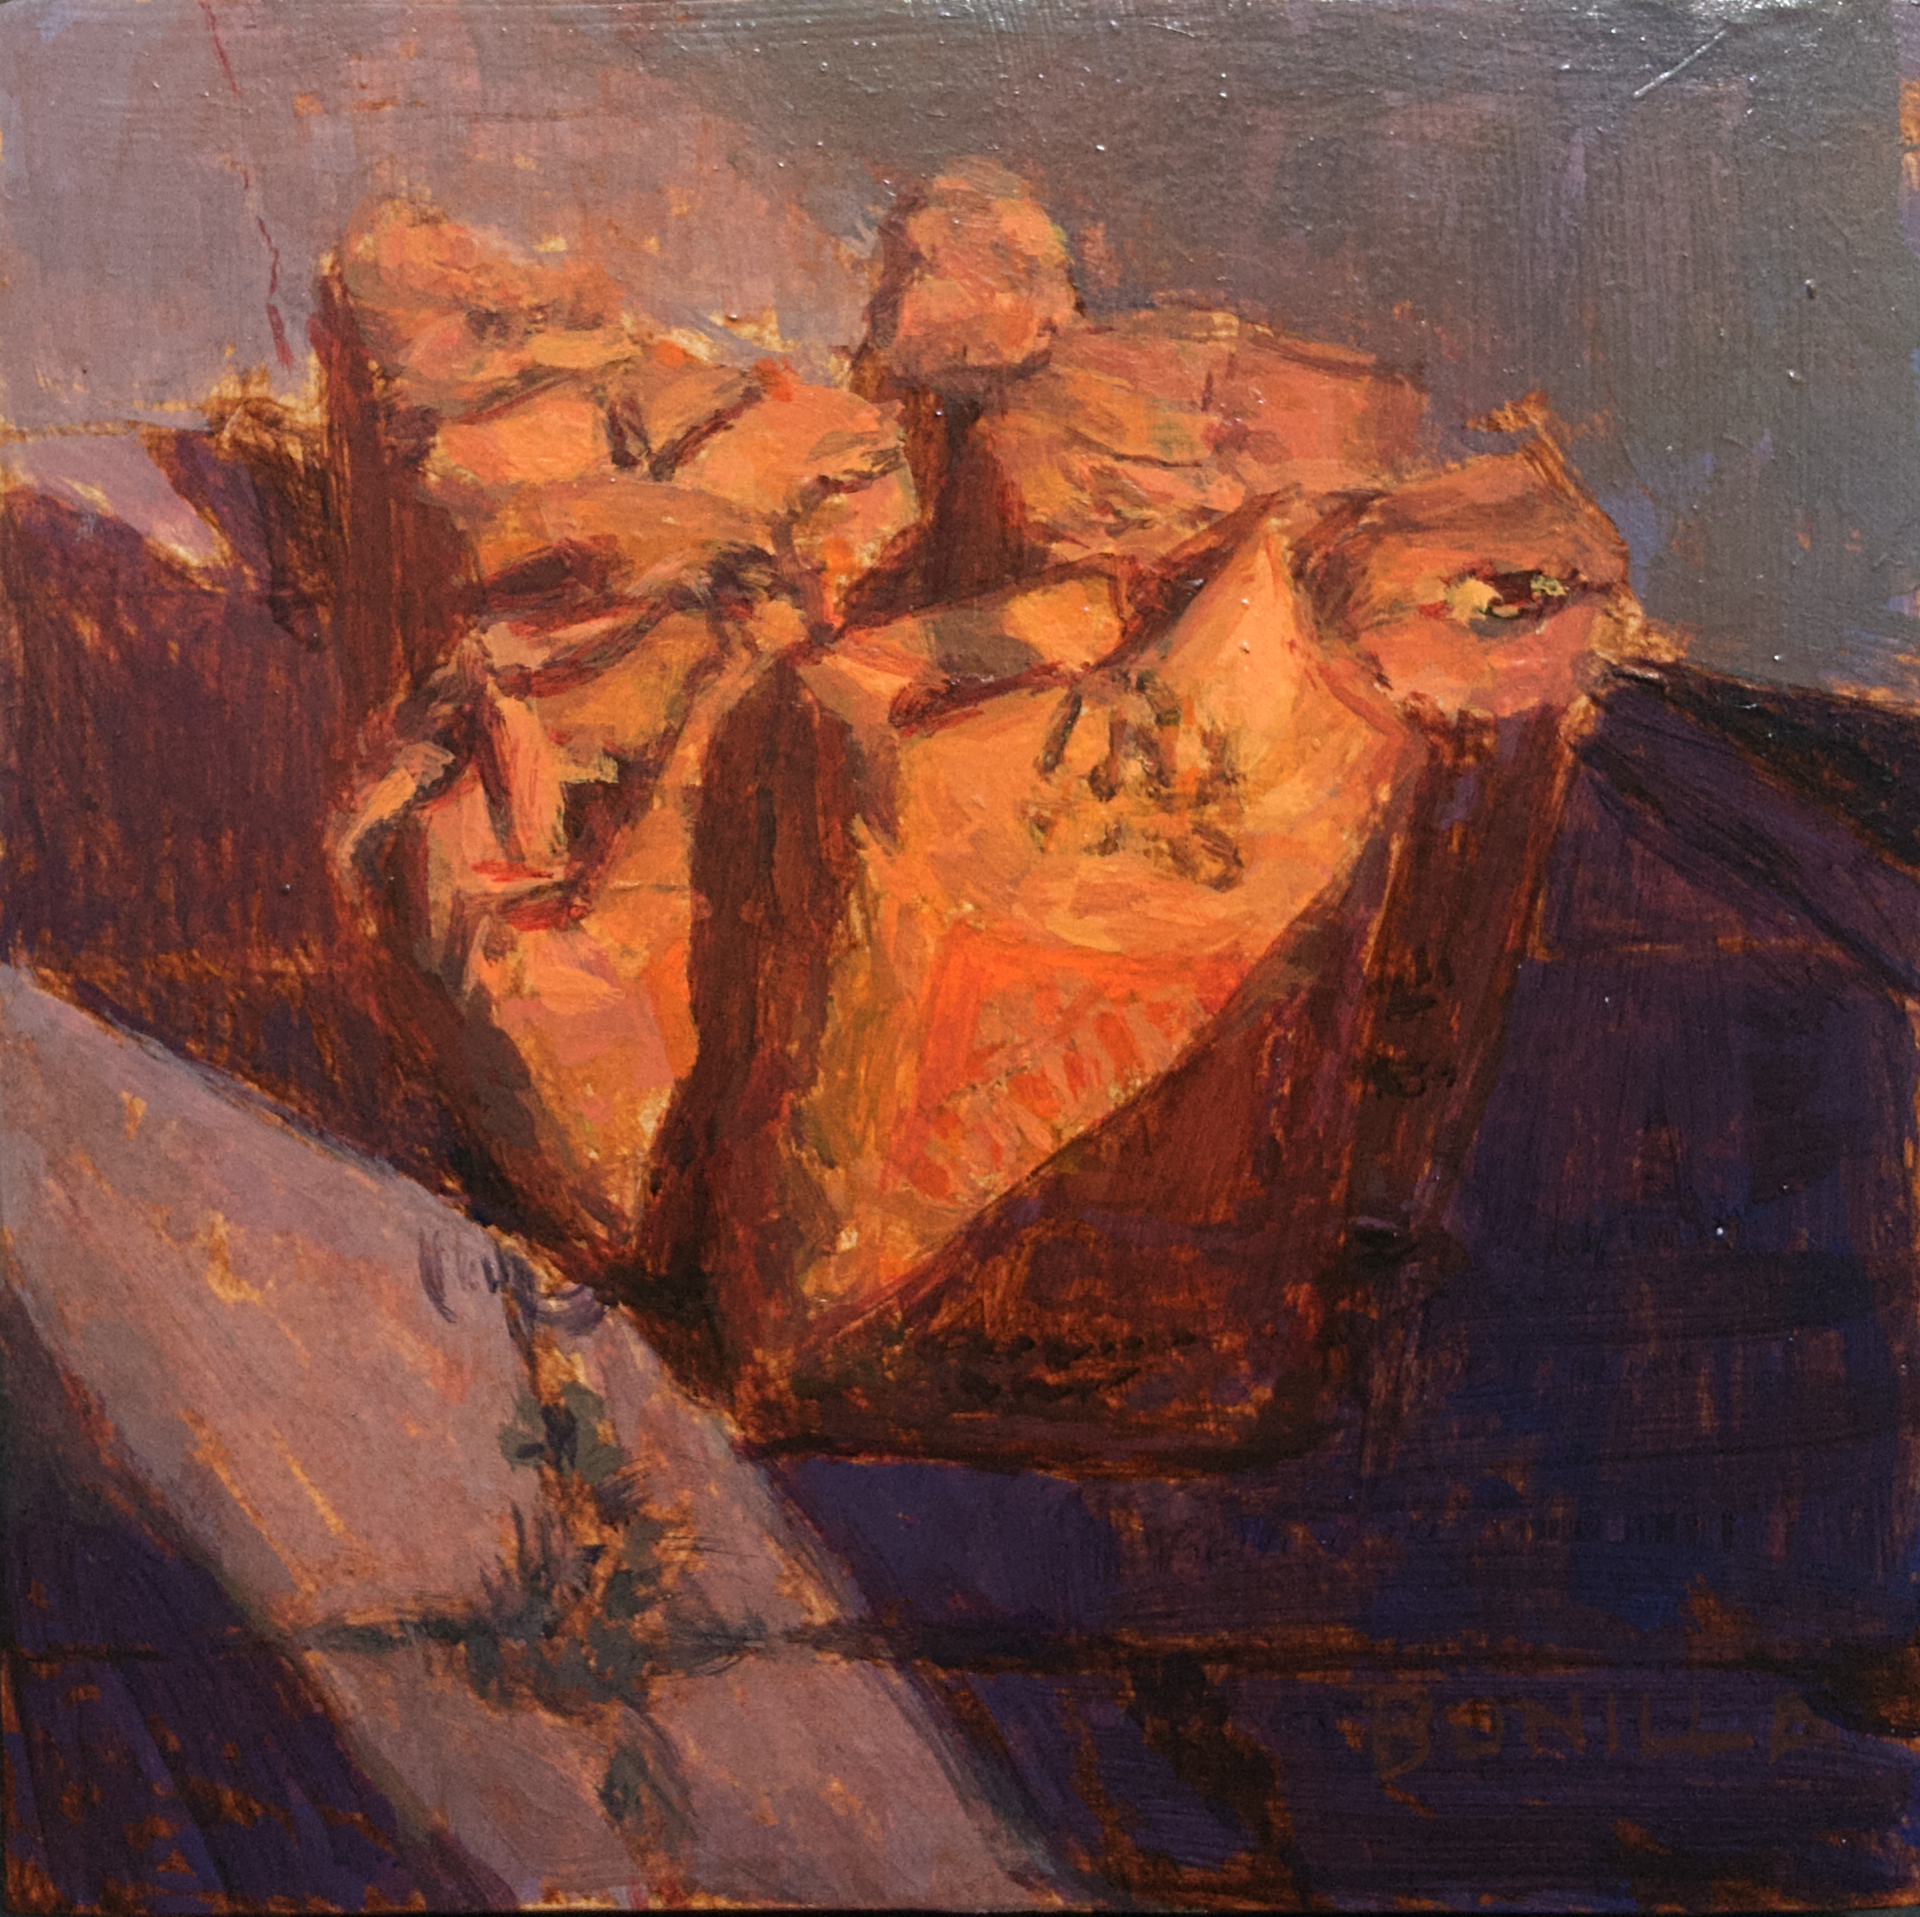 Study for by the Breadhive by Raymond Bonilla